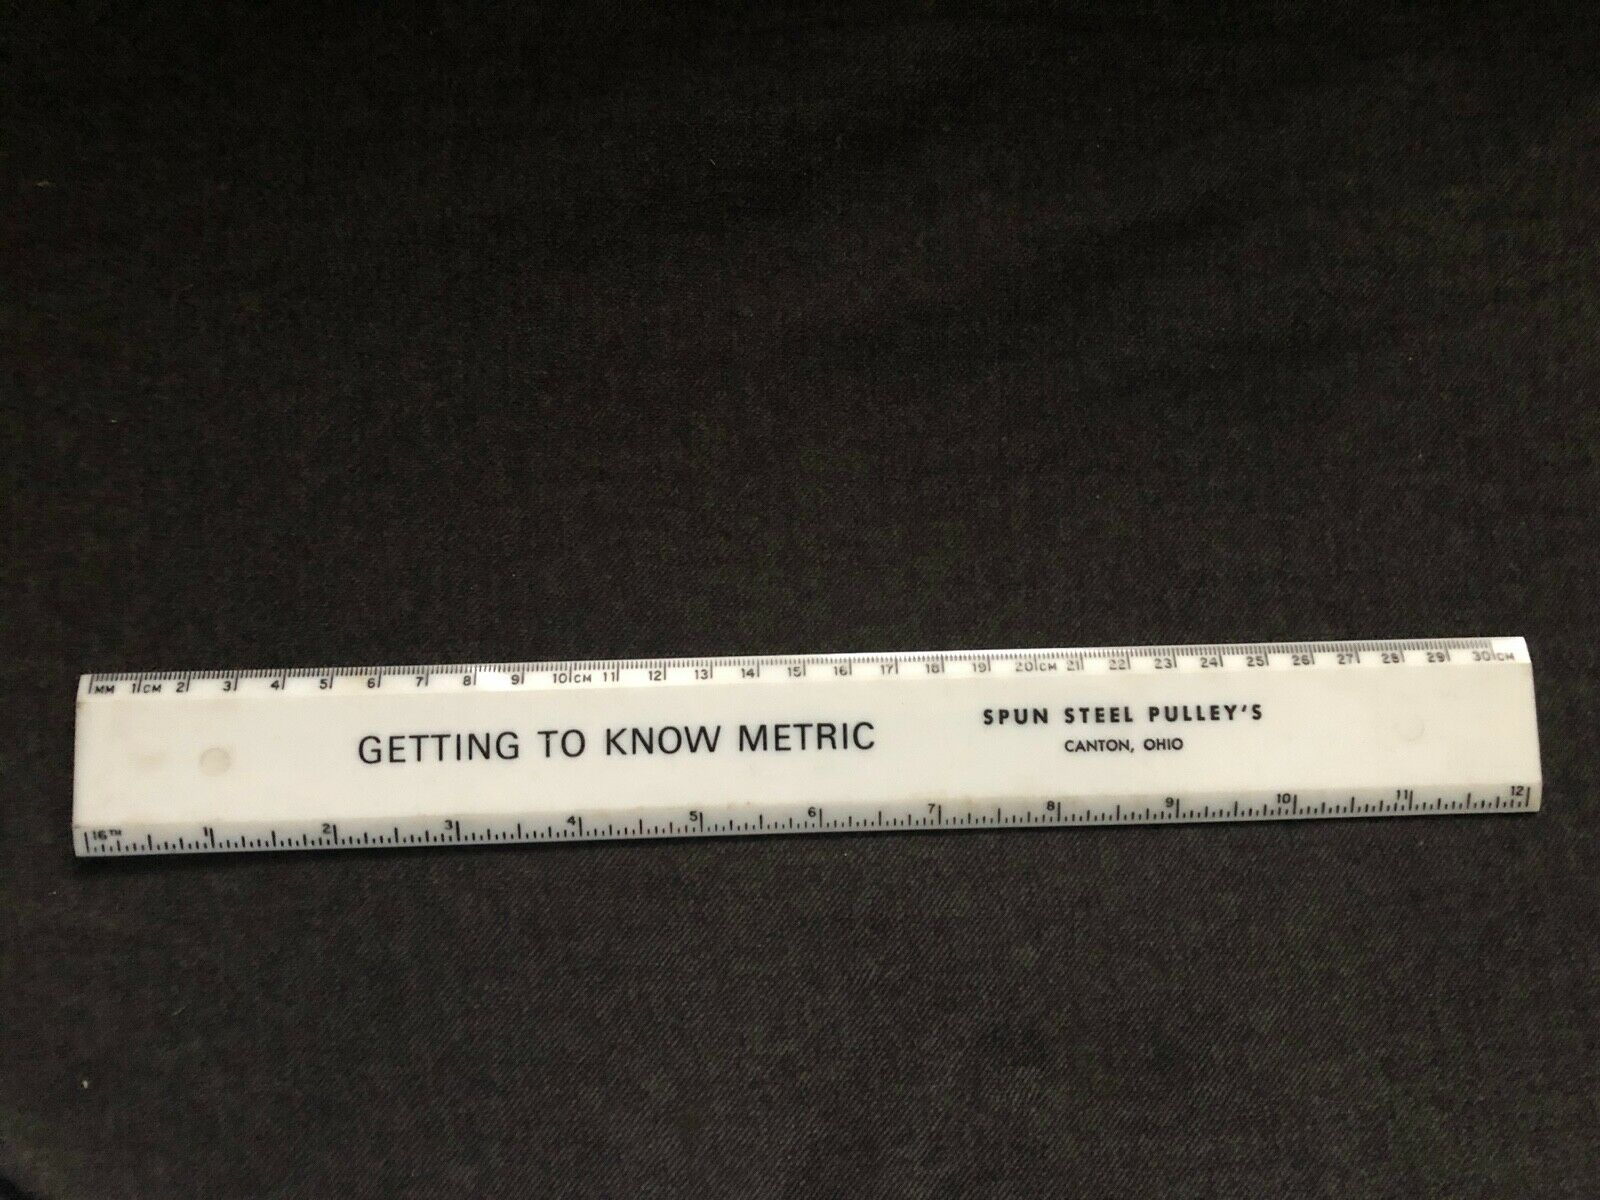 Vintage SPUN STEEL PULLEY'S Plastic Ruler Canton Ohio GETTING TO KNOW METRIC